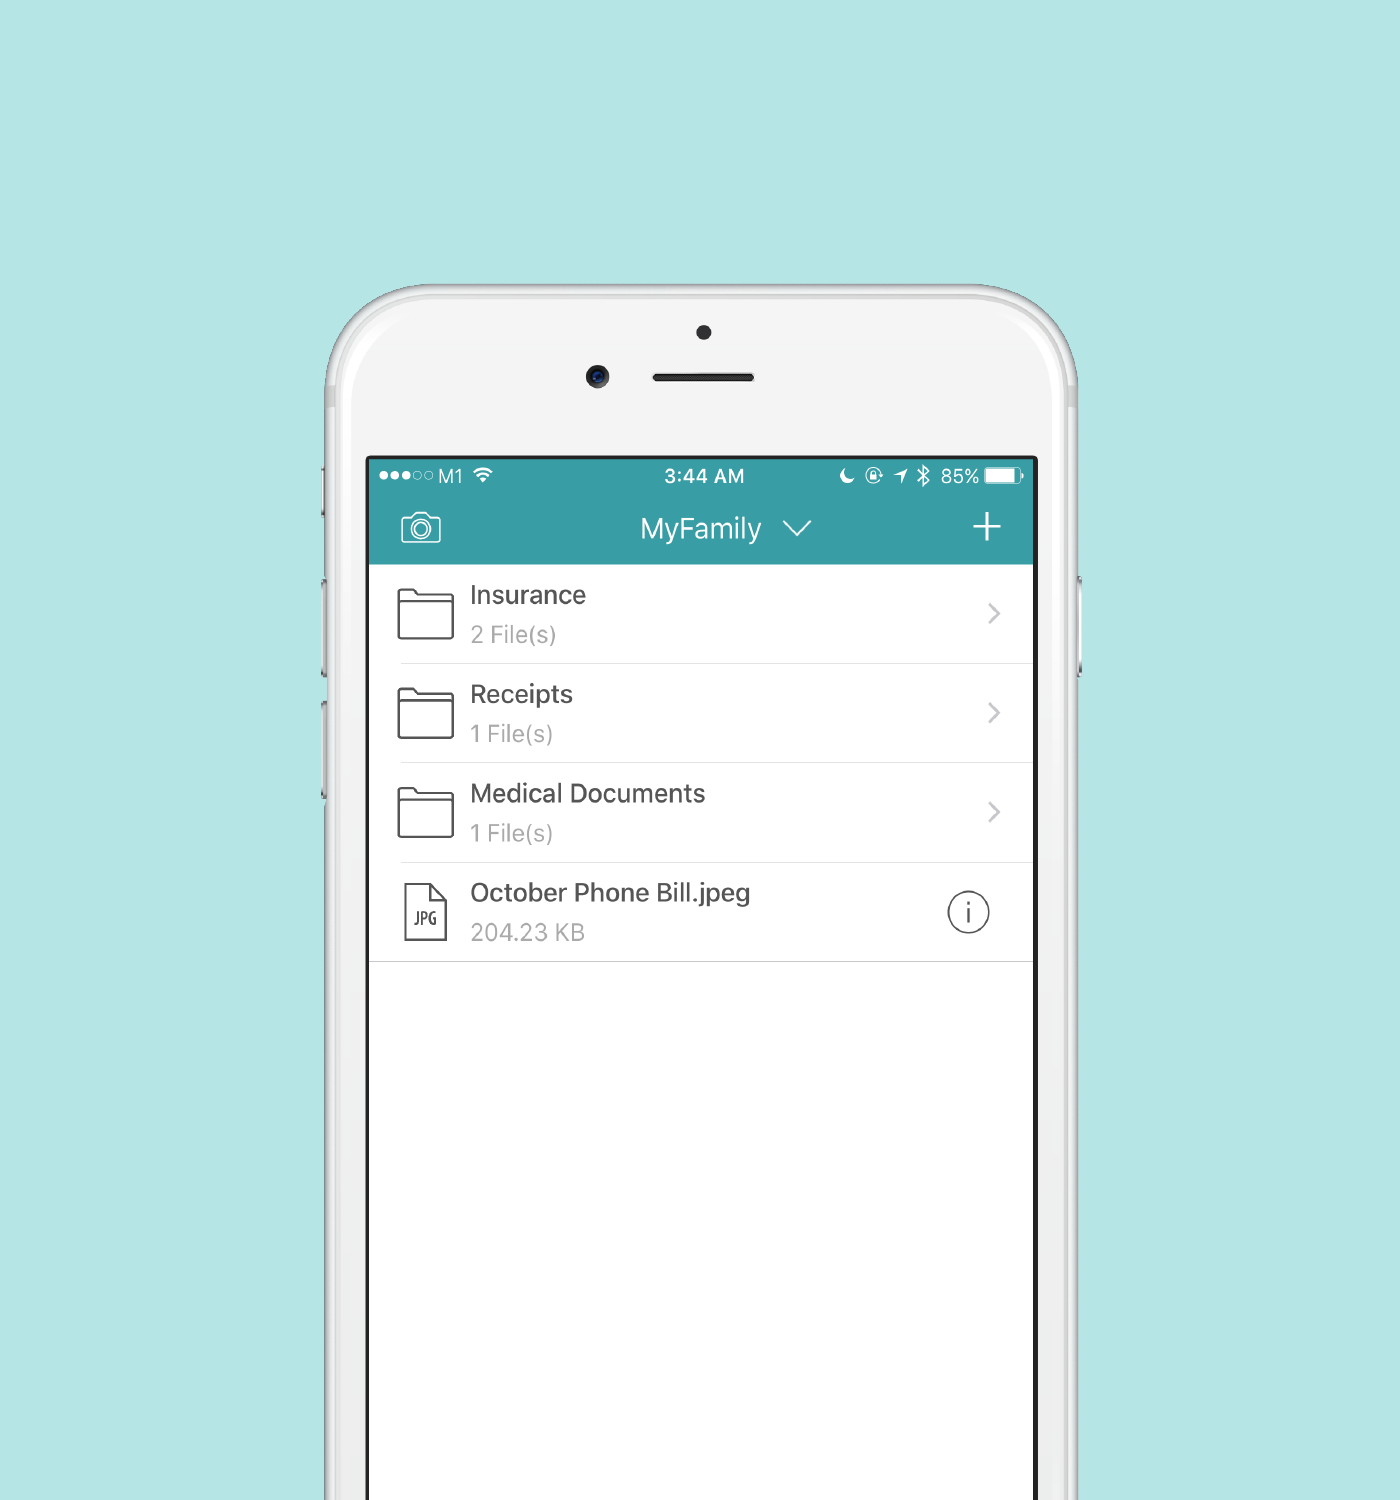 - Attach all your important documents (prescriptions, vaccination details, flight tickets, contracts and more) by using email, camera or direct upload from the cloud. Never feel frazzled about leaving important files behind.